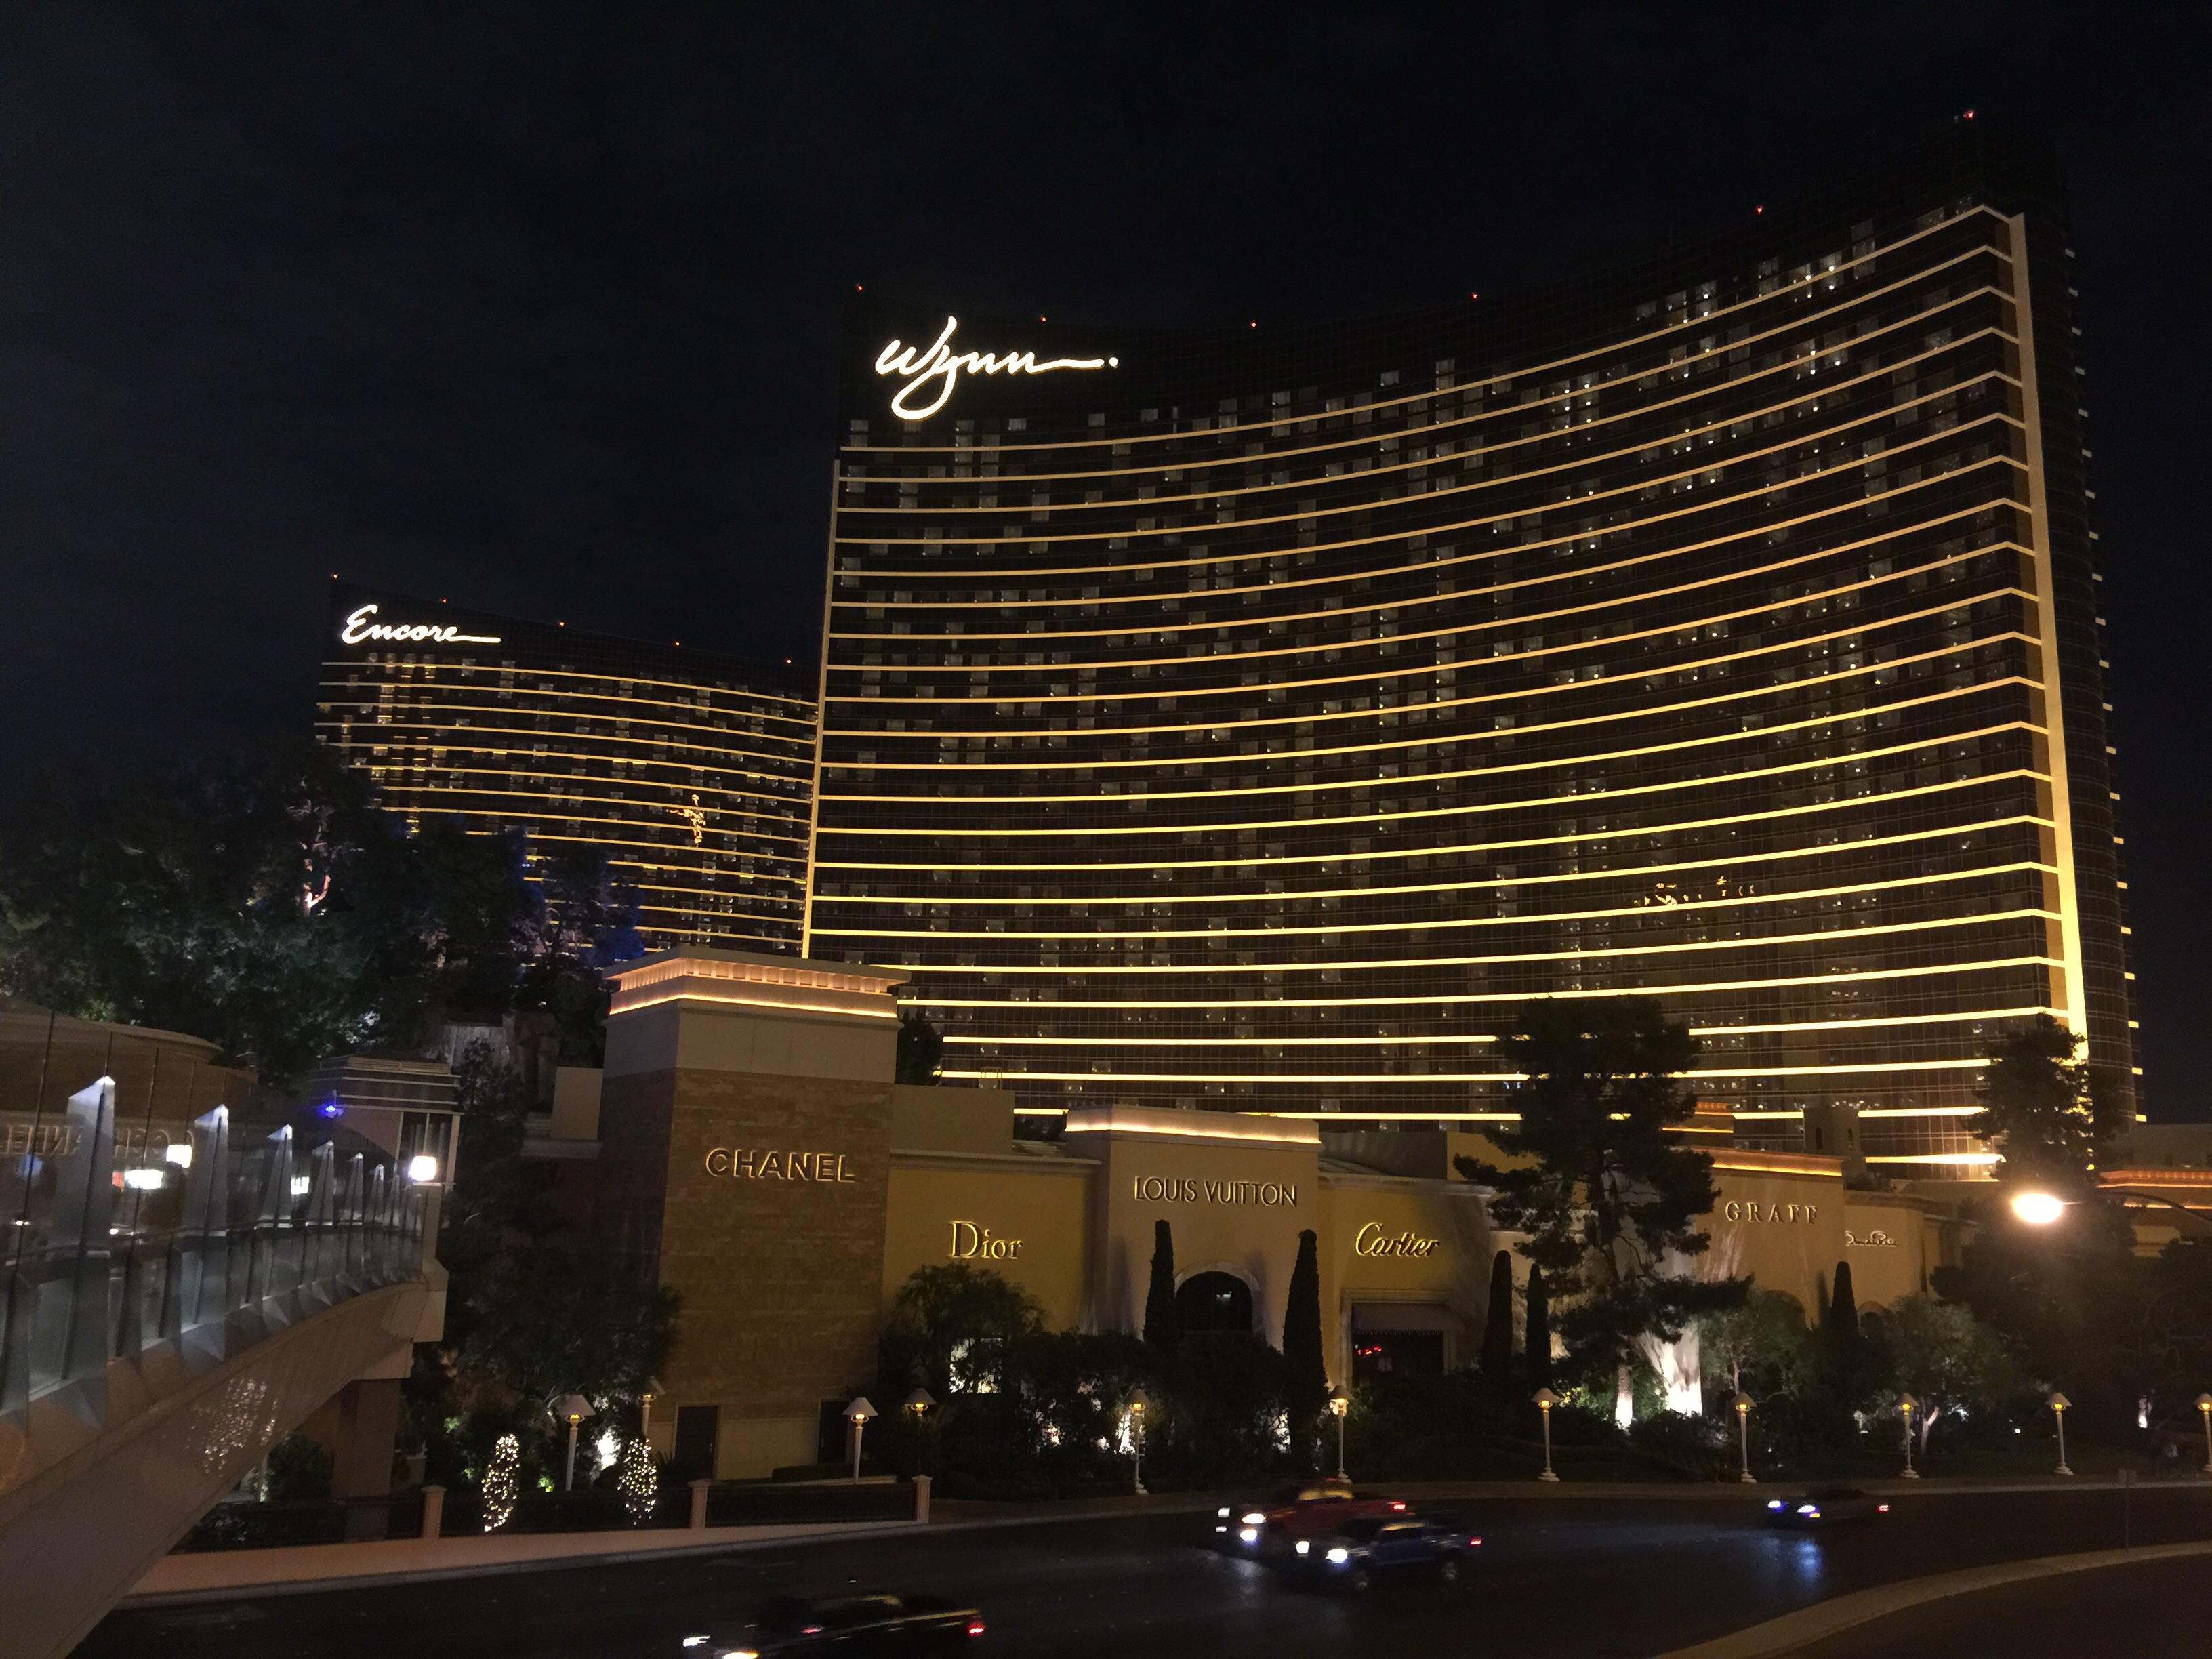 Wynn and Encore at night. Las Vegas 2015